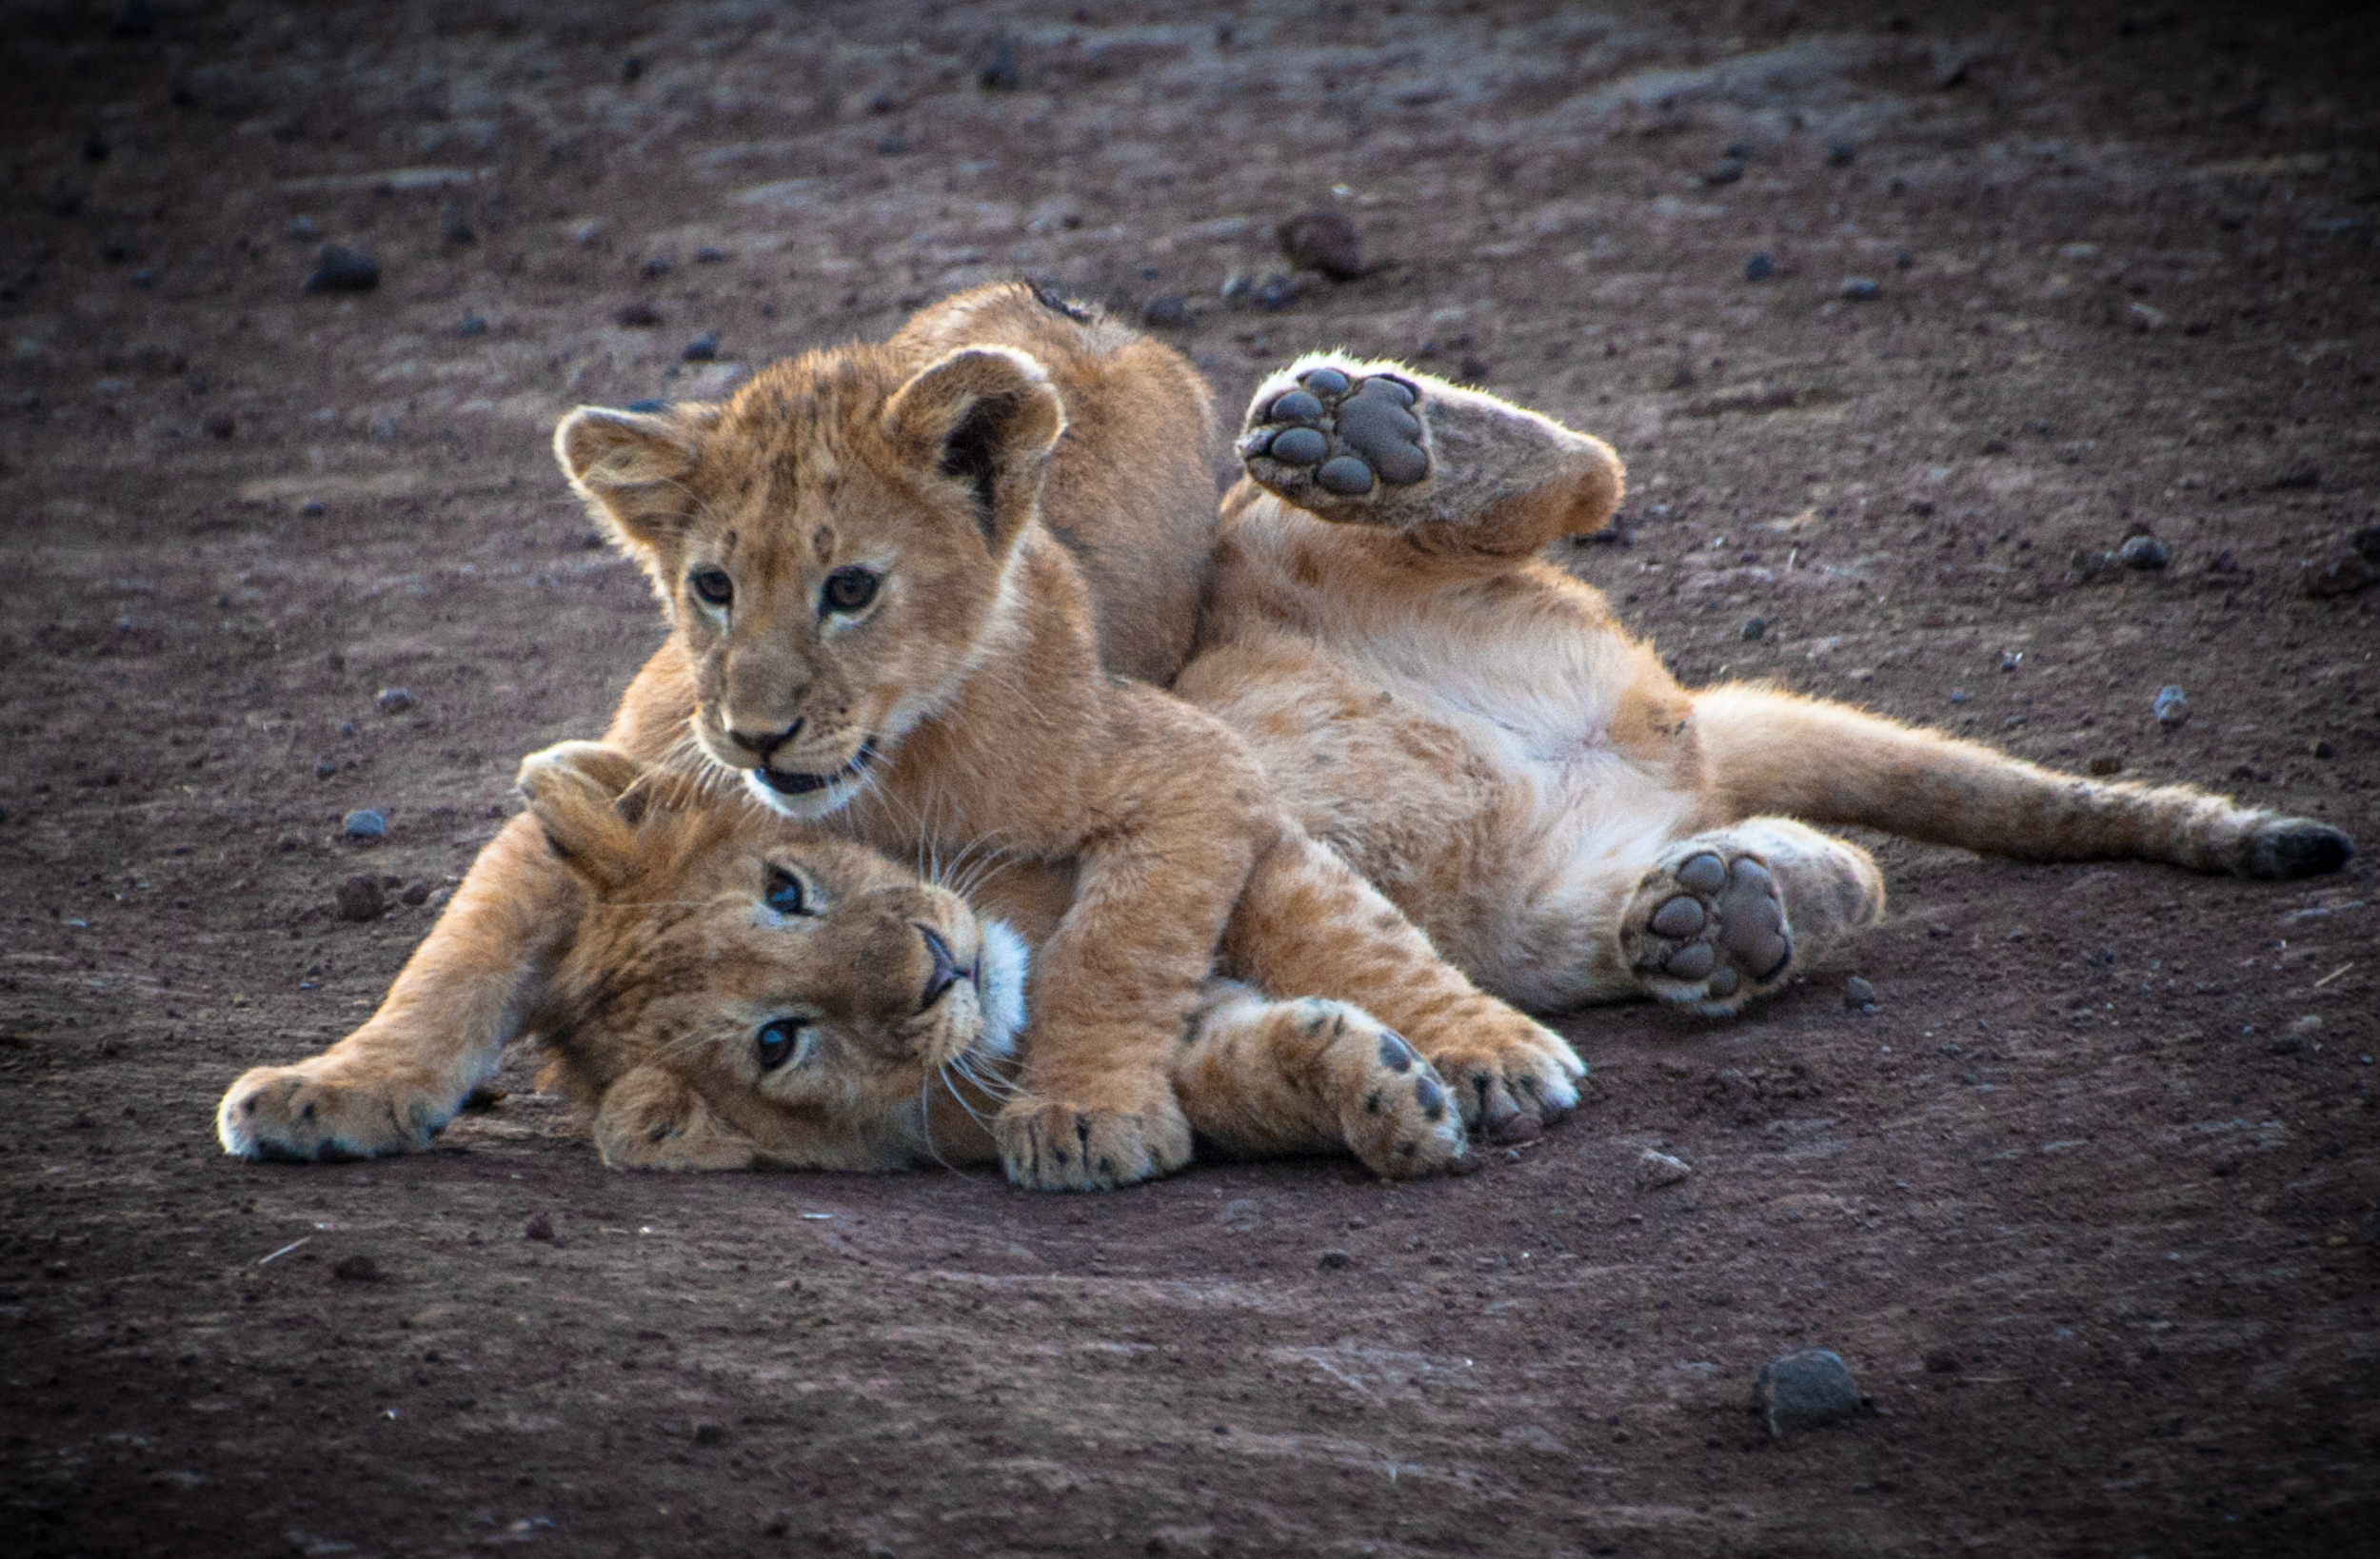 A pair of lion cubs wrestle in the Ngorongoro Crater in Tanzania